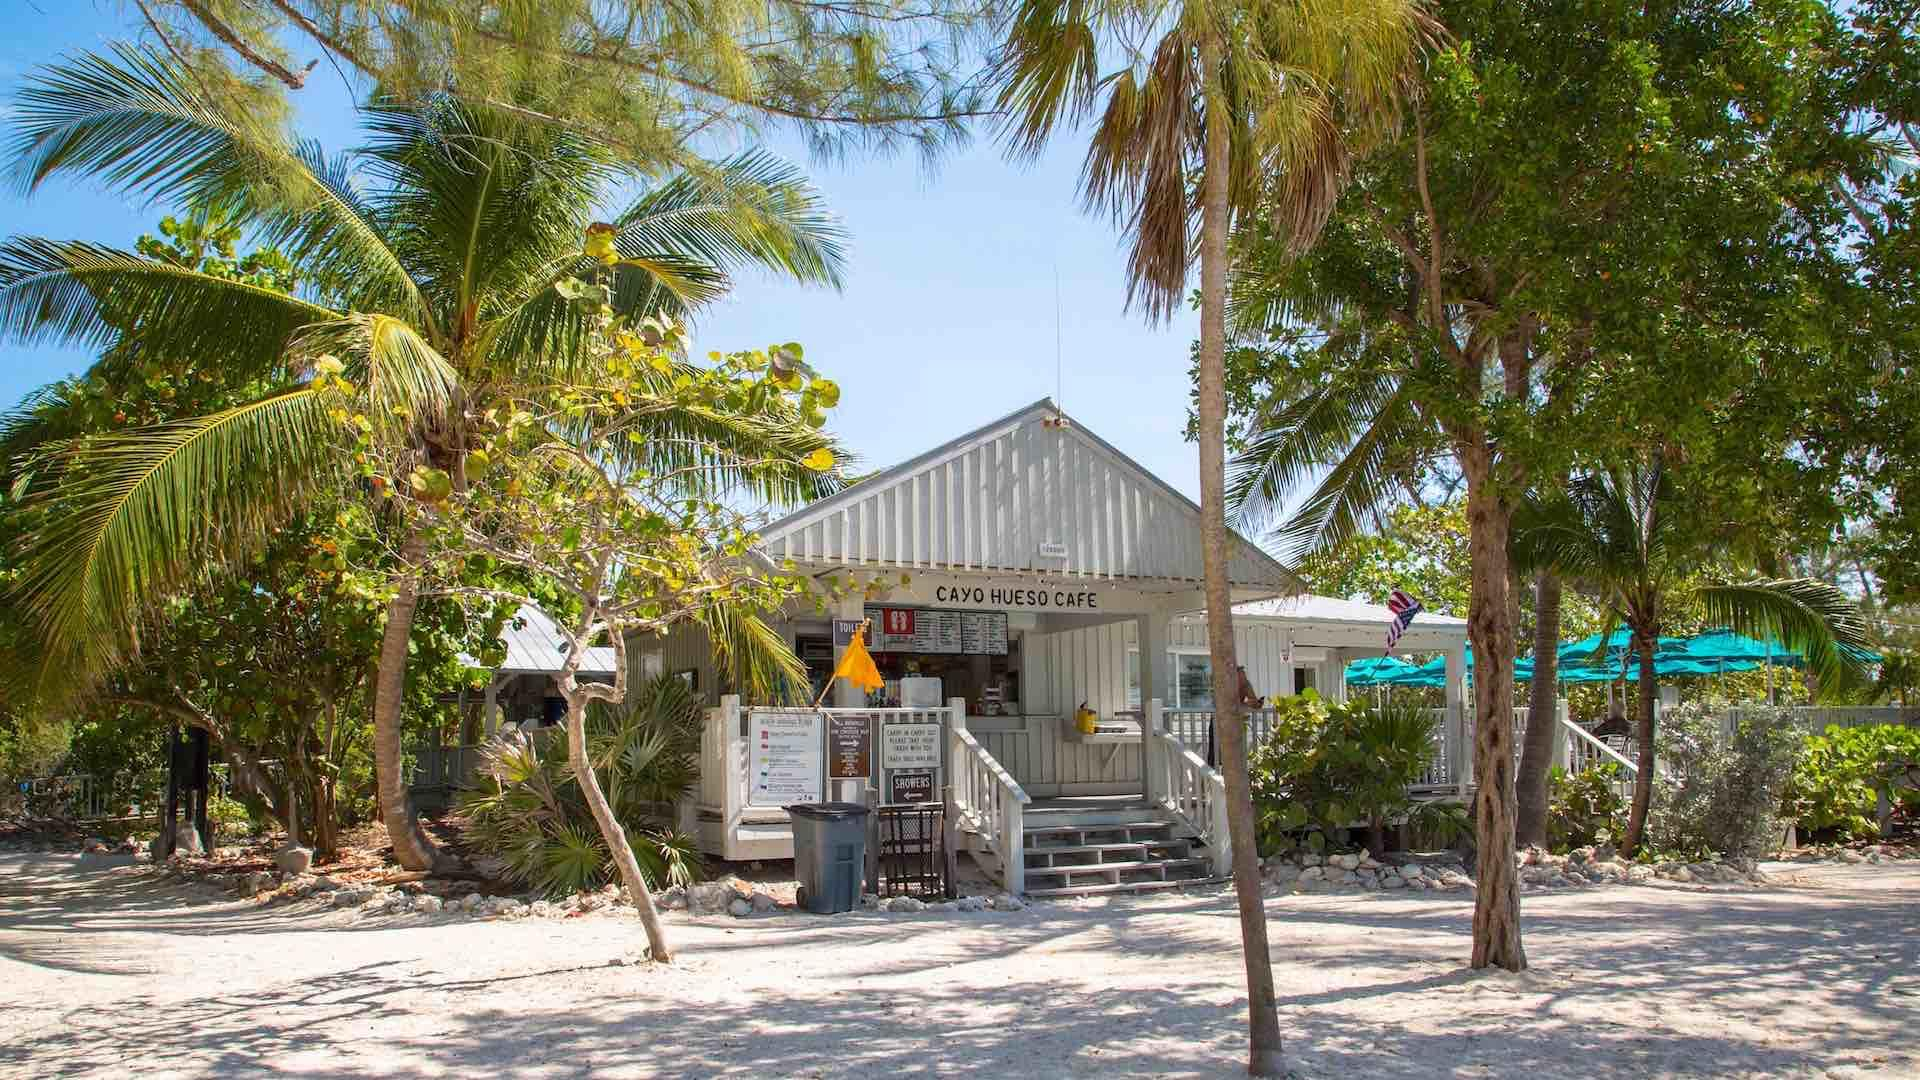 Grab a snack or drink at the Fort Zach Cayo Hueso cafe...